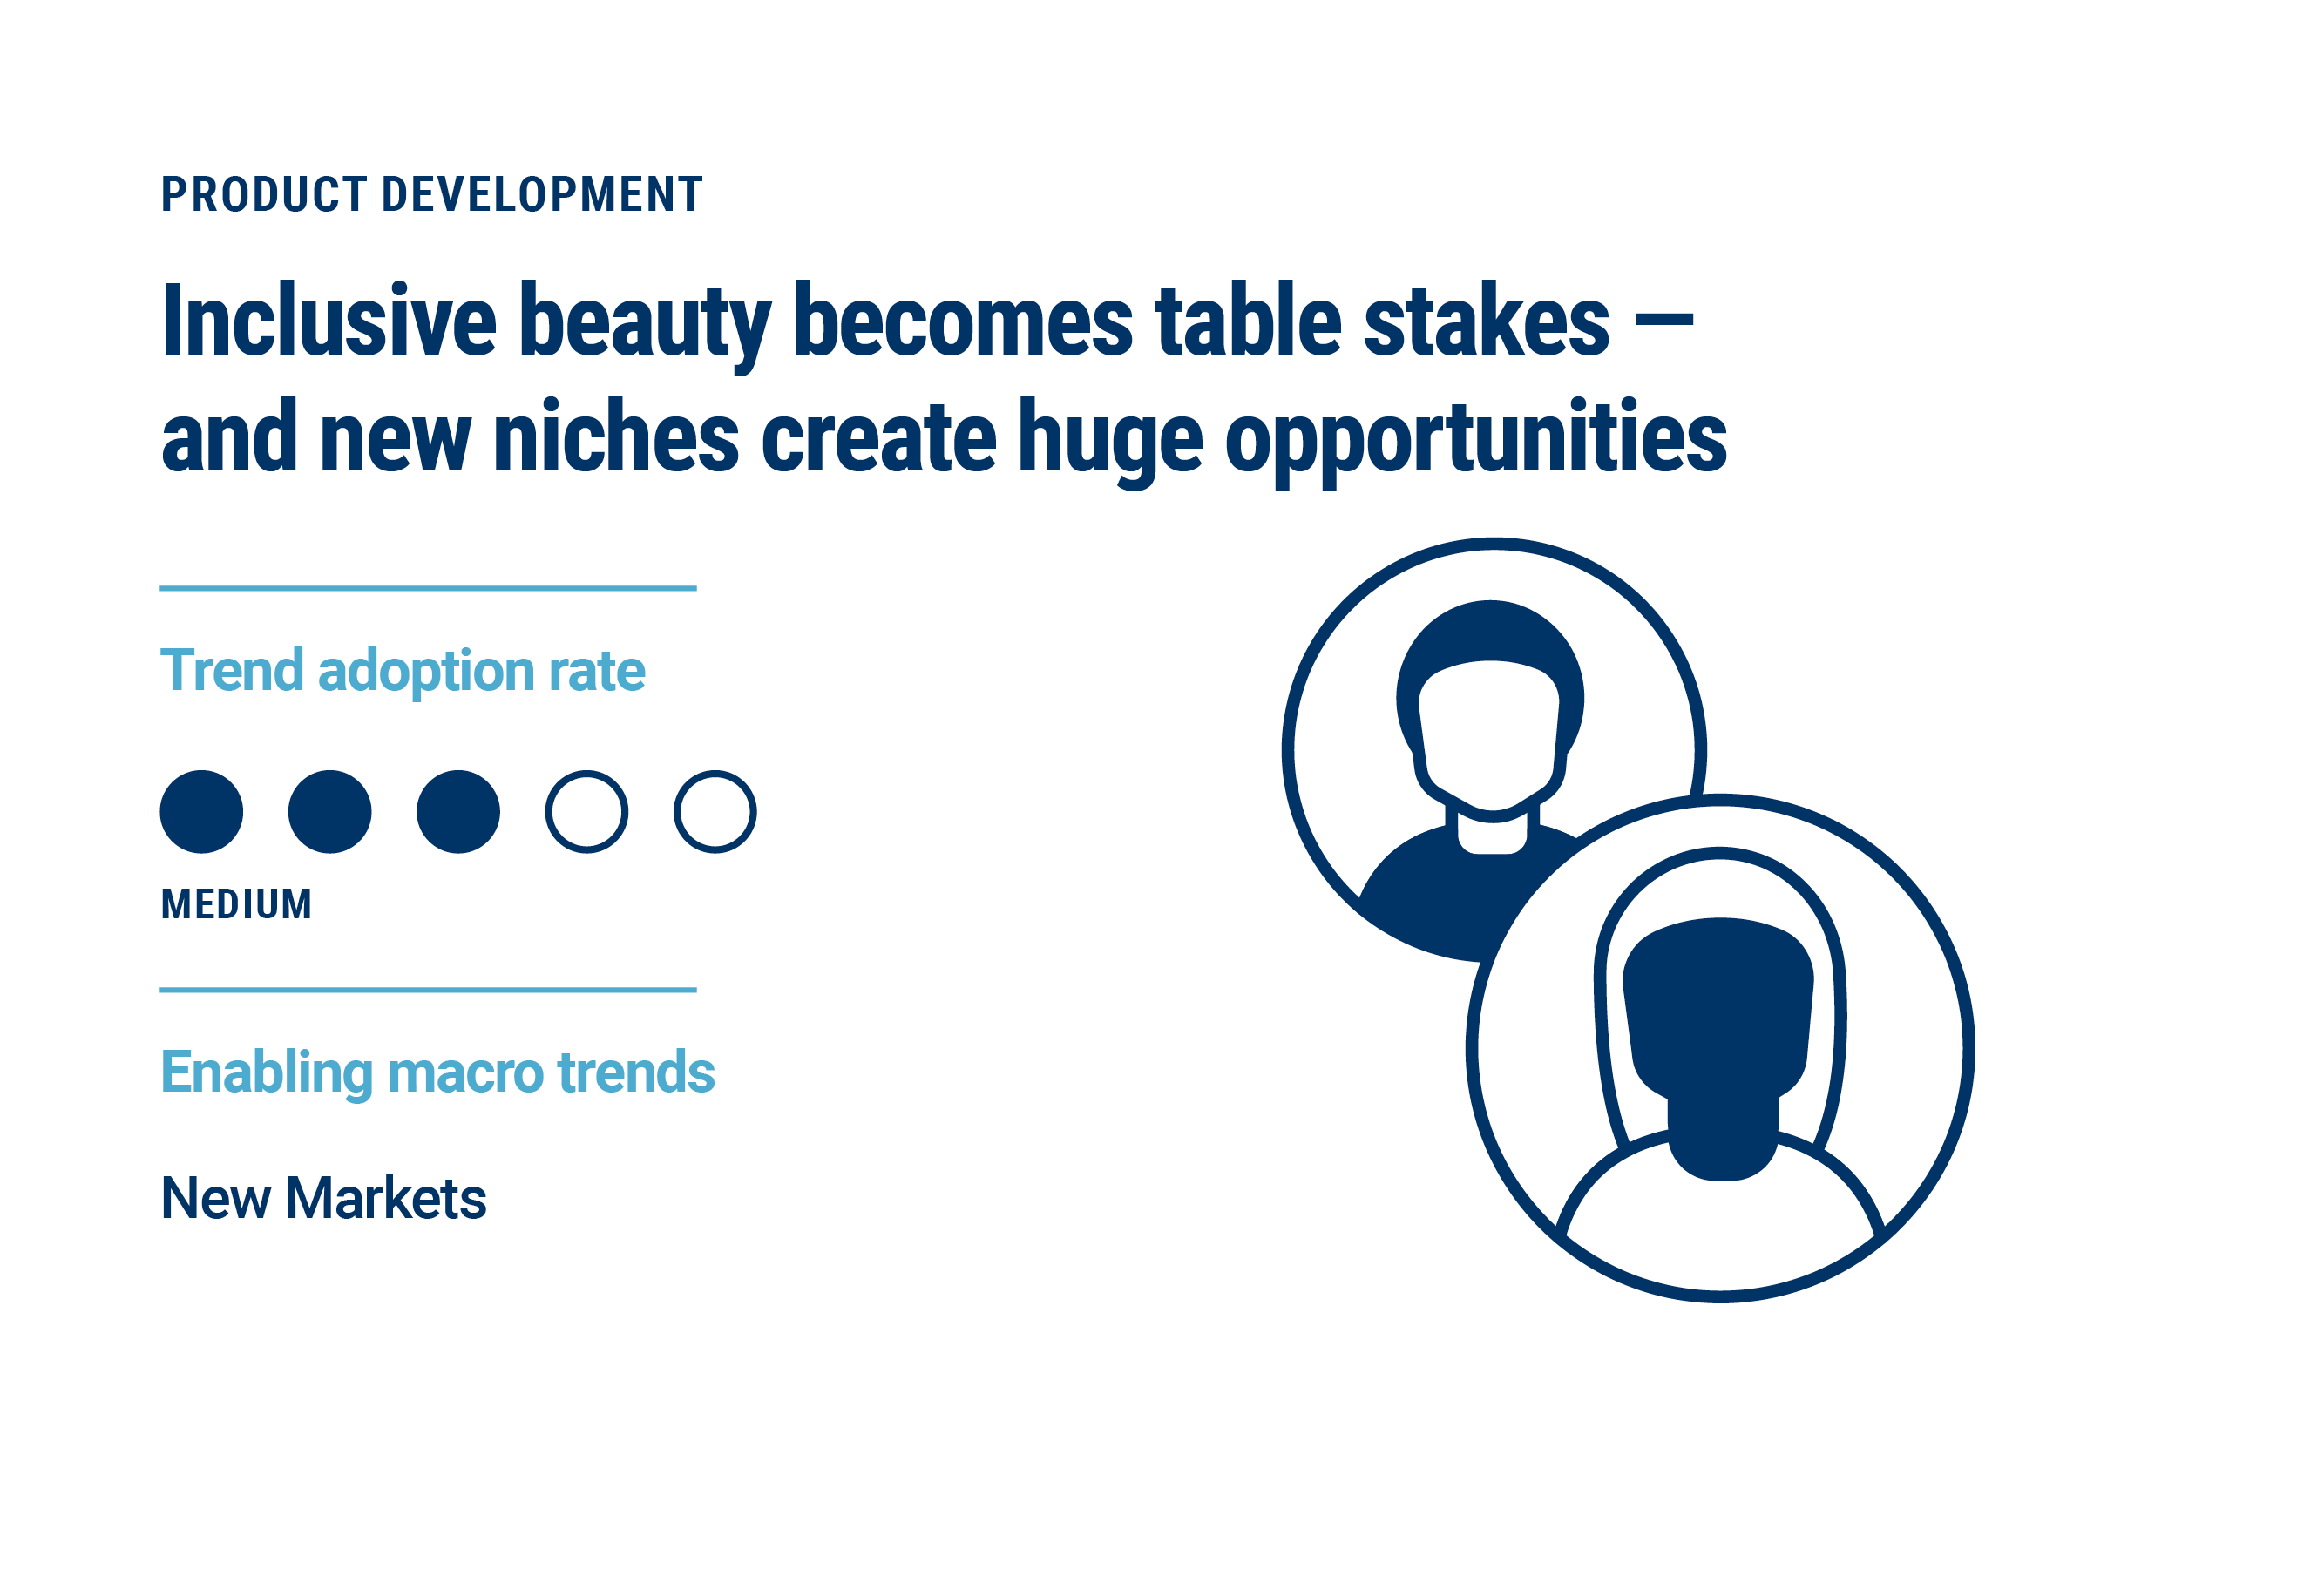 Graphic highlighting how inclusive beauty has become table stakes and niches are creating huge opportunities.